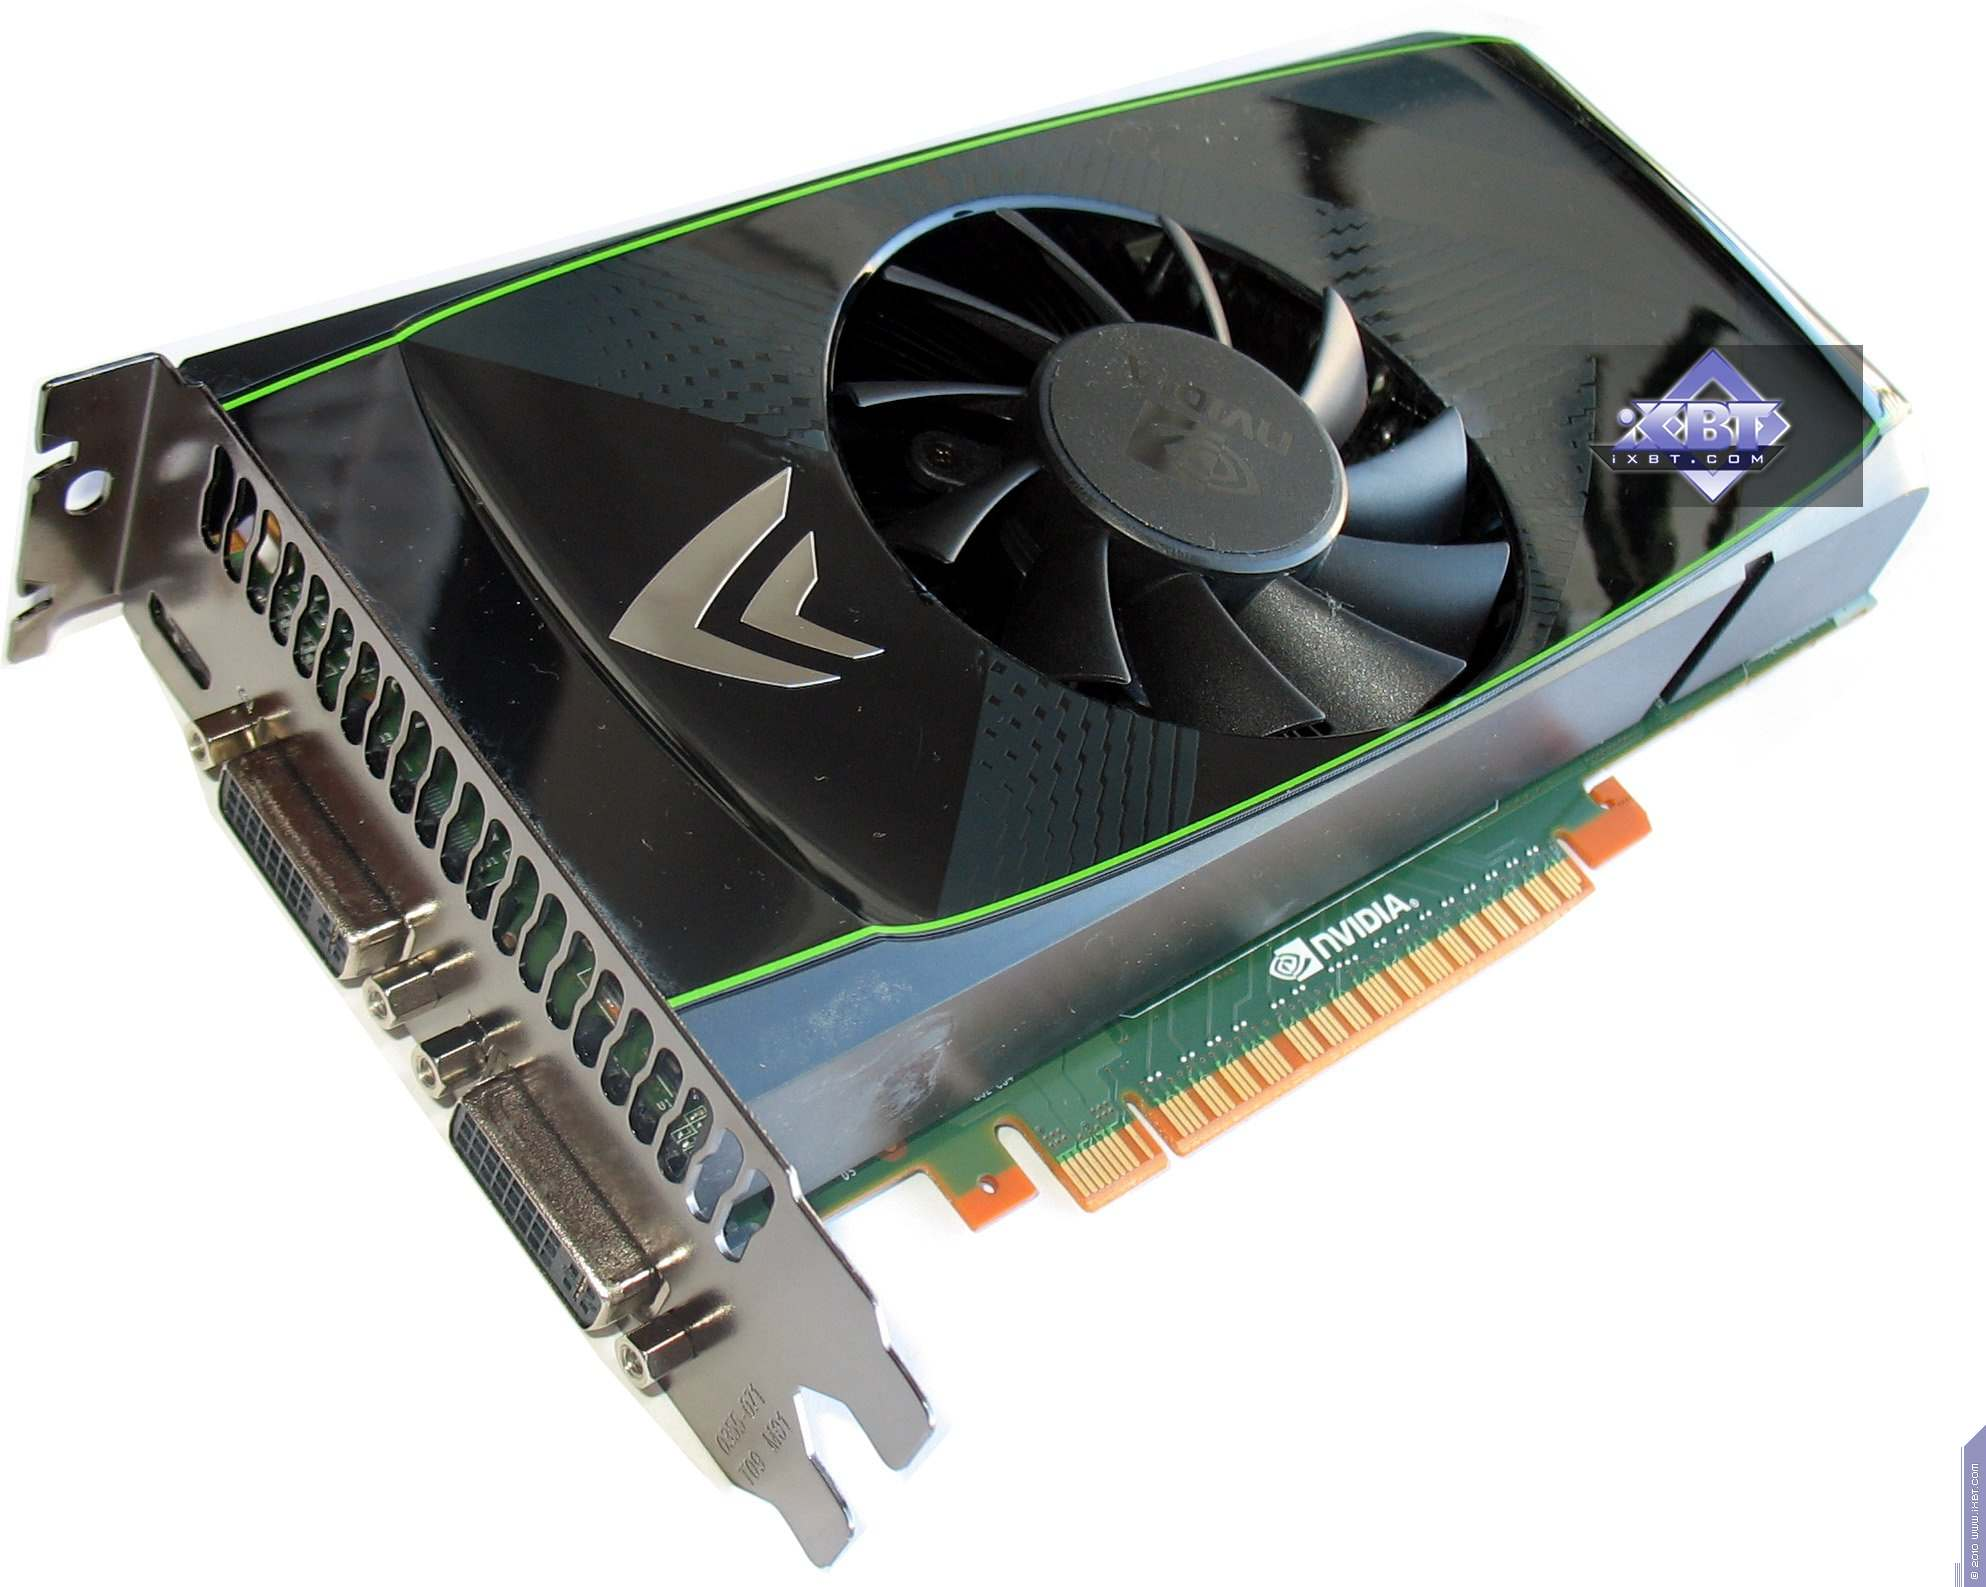 Nvidia gts 450 power requirements - d09